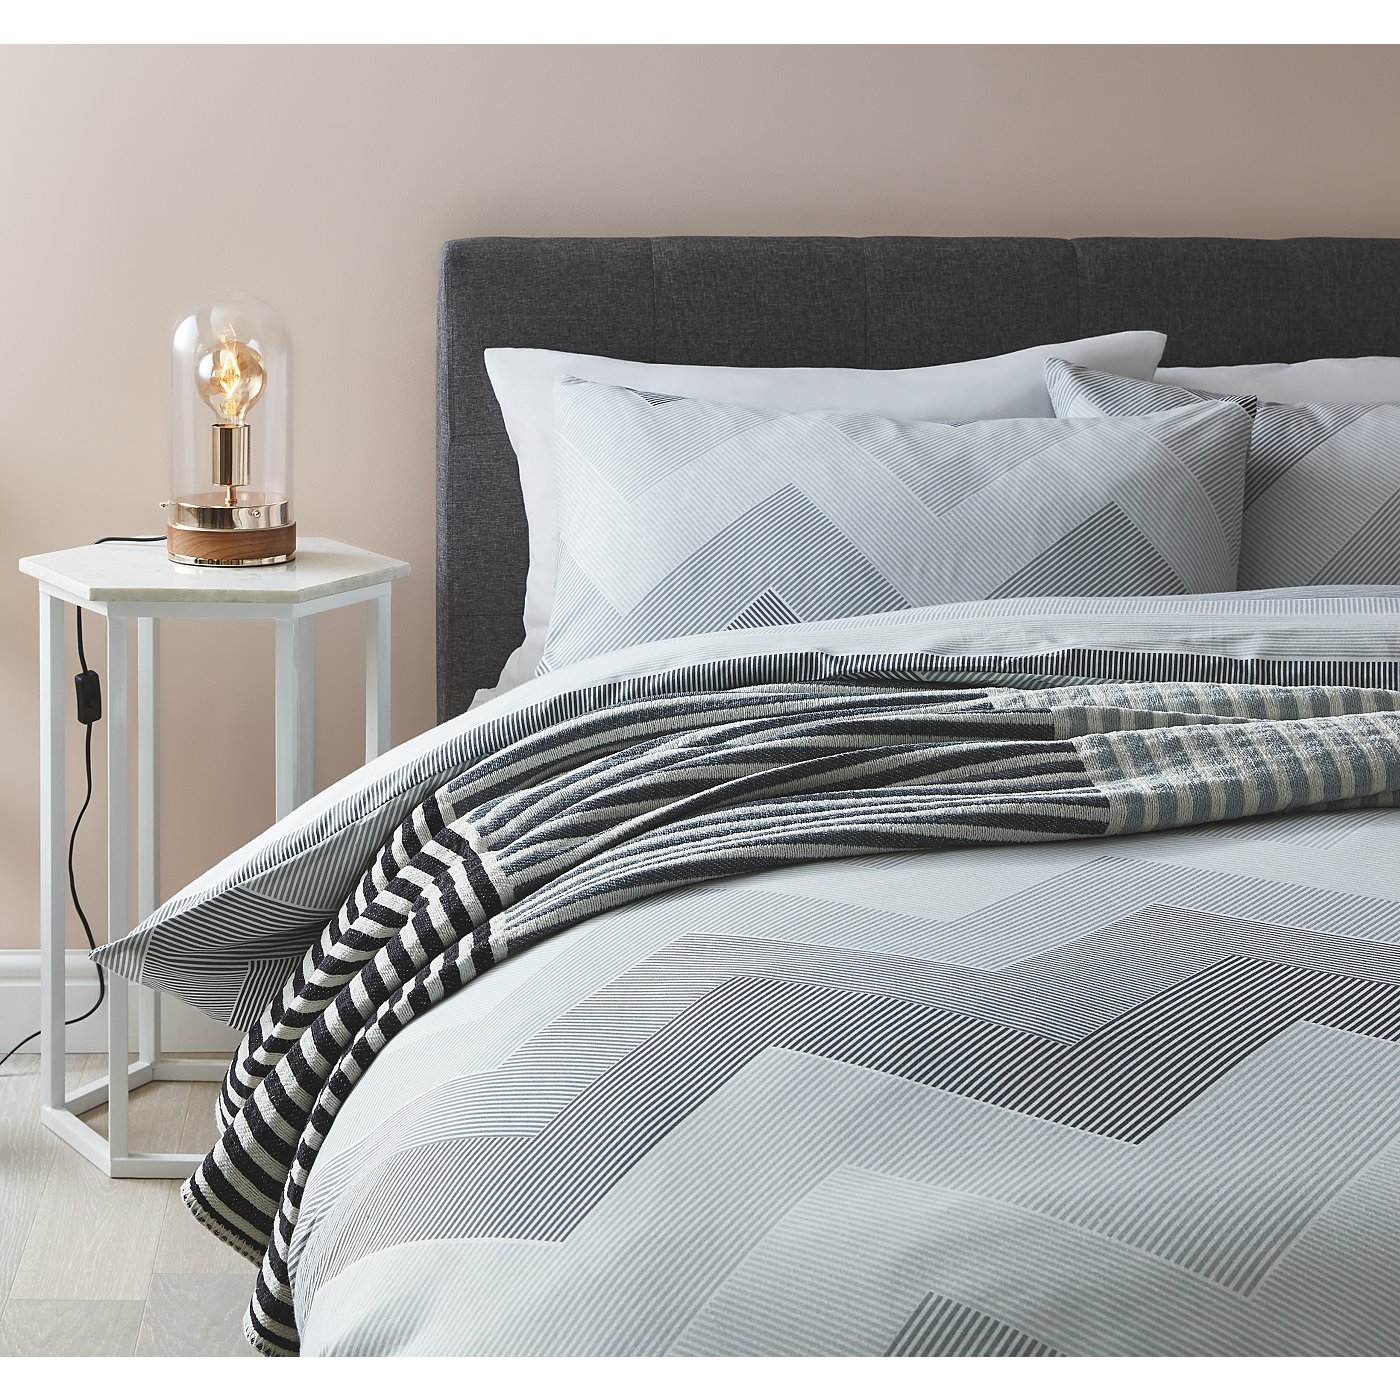 Monochrome Bedding Range Loading Zoom